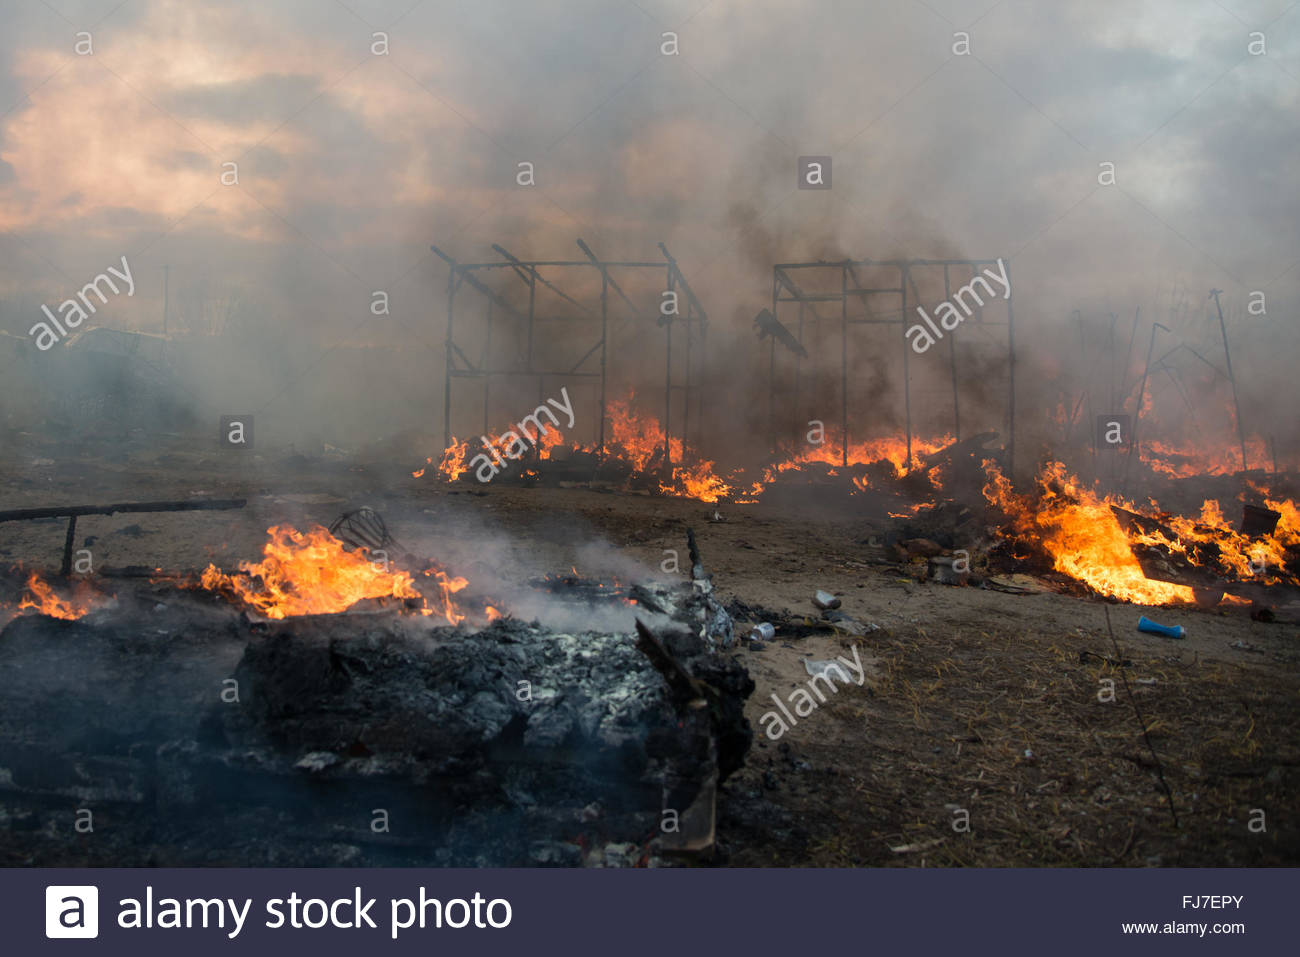 Calais, France. February 29th, 2016. Fires set by just-evicted refugees ravage the 'Jungle' migrant camp - Stock Image